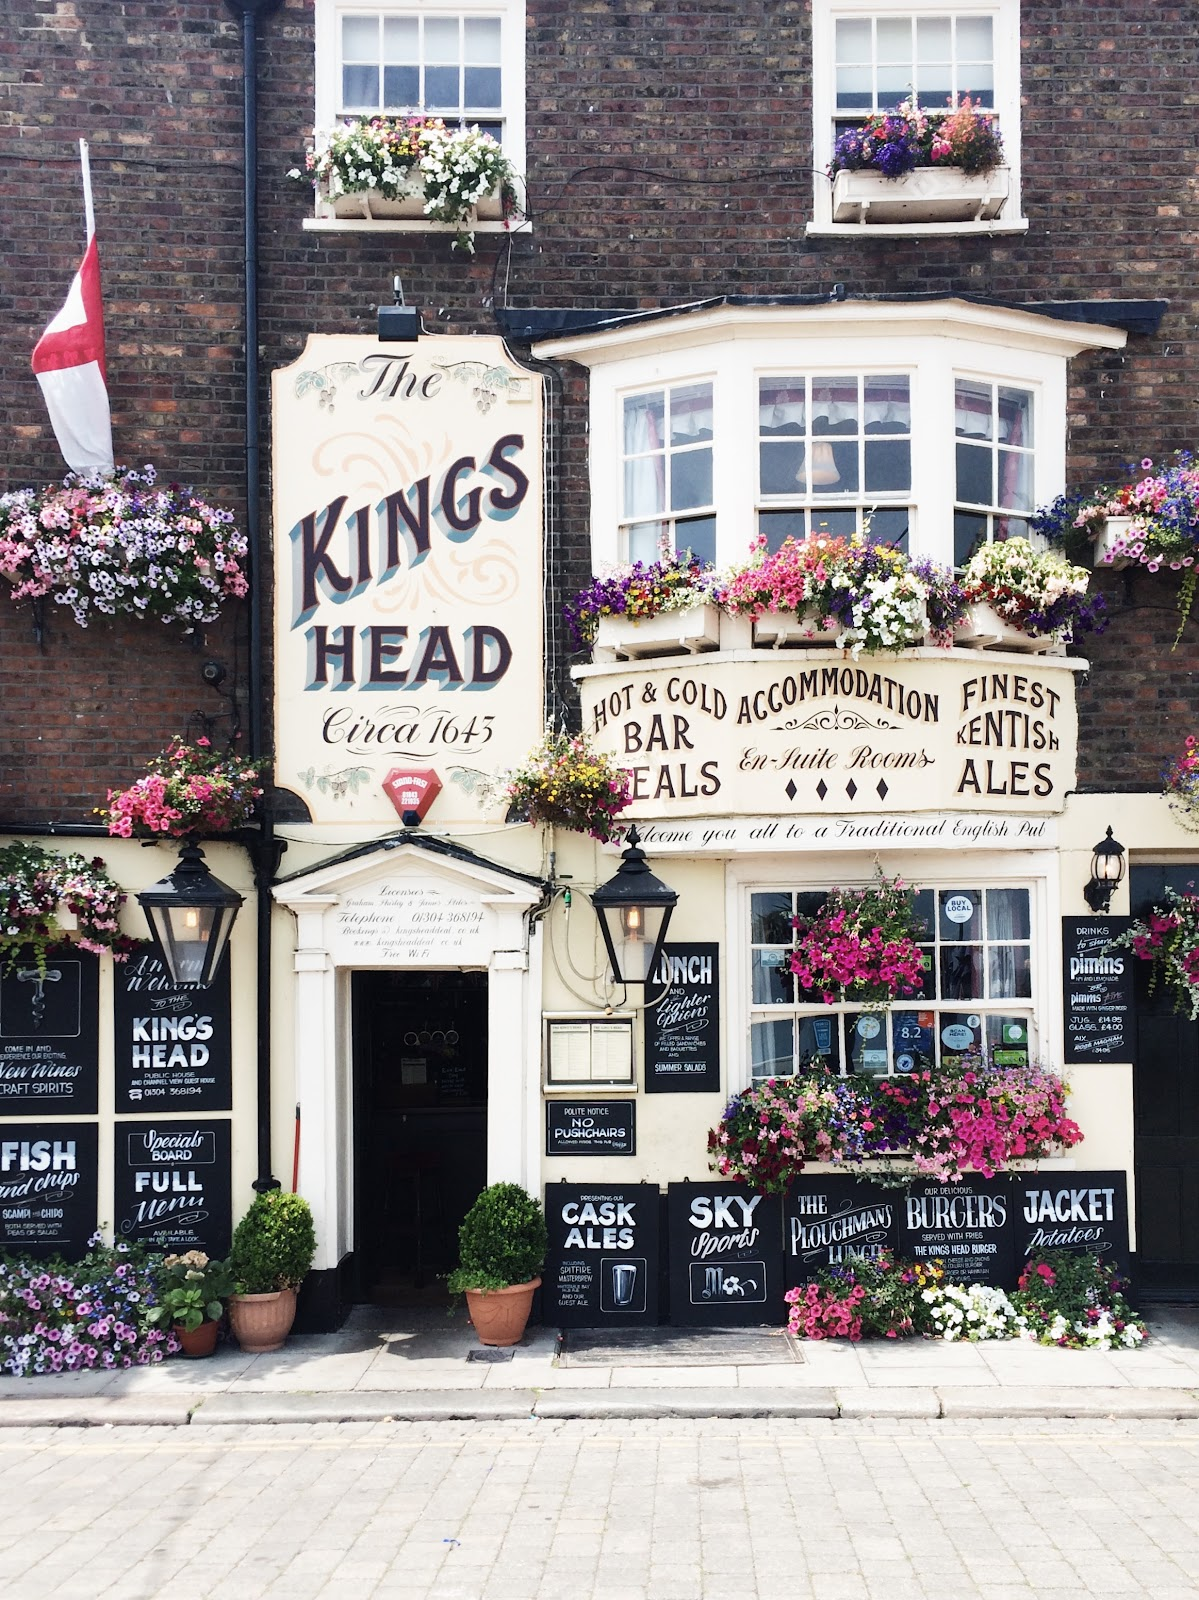 A Guide to Deal, Kent. Whether it is a brisk walk along the pier, a wander around the antique shops or fish and chips on the beach; there is always so much to discover and see in this genteel coastal town. Here are some of my favourite things to do.